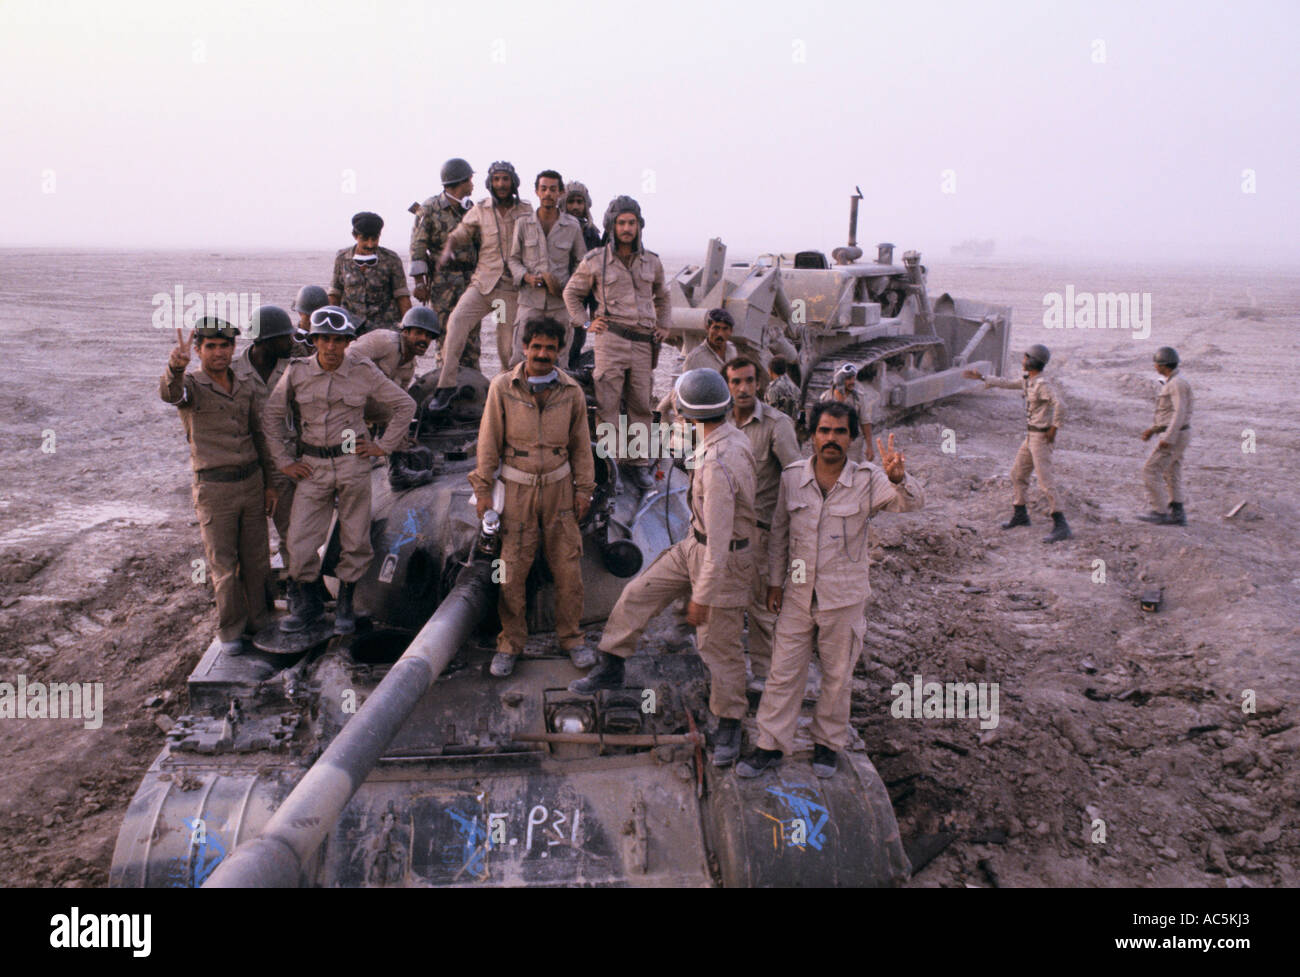 https://c7.alamy.com/comp/AC5KJ3/iran-iraq-war-1980s-soldiers-on-tank-AC5KJ3.jpg